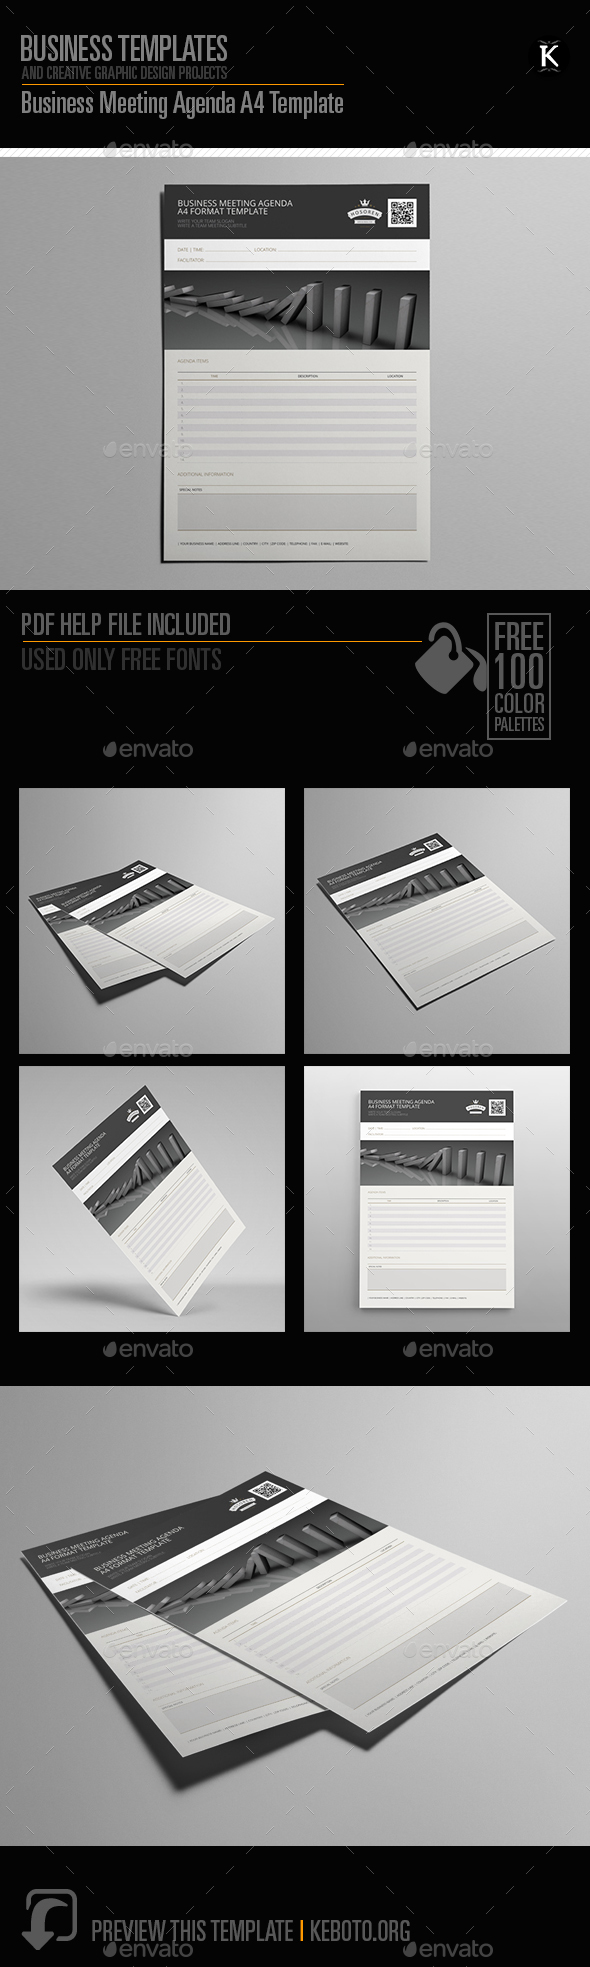 Business Meeting Agenda A4 Template - Miscellaneous Print Templates